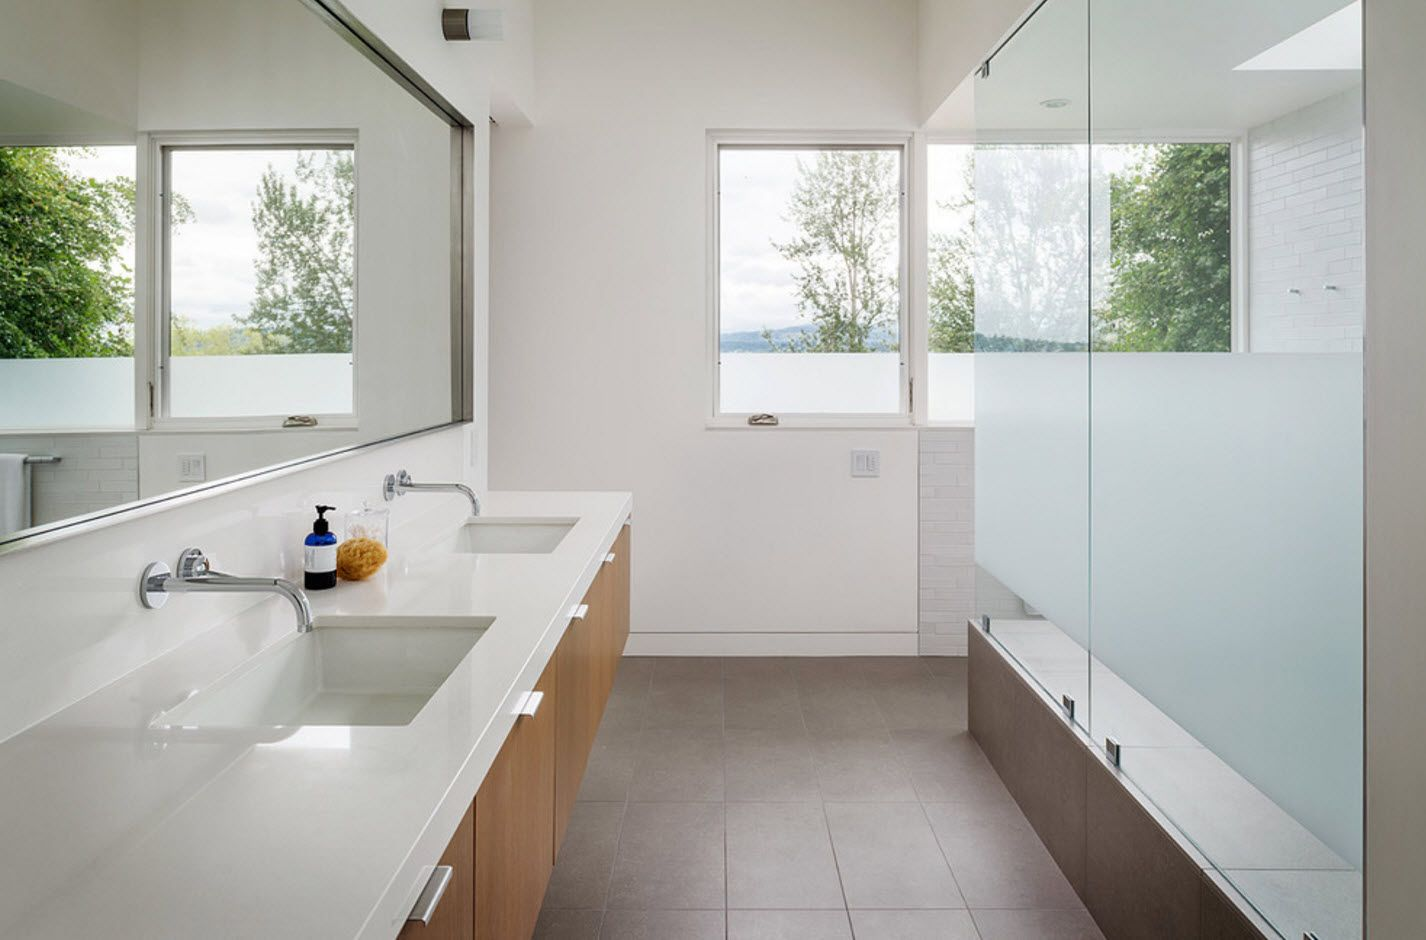 White first floor bathroom for two with wooden vanity facades